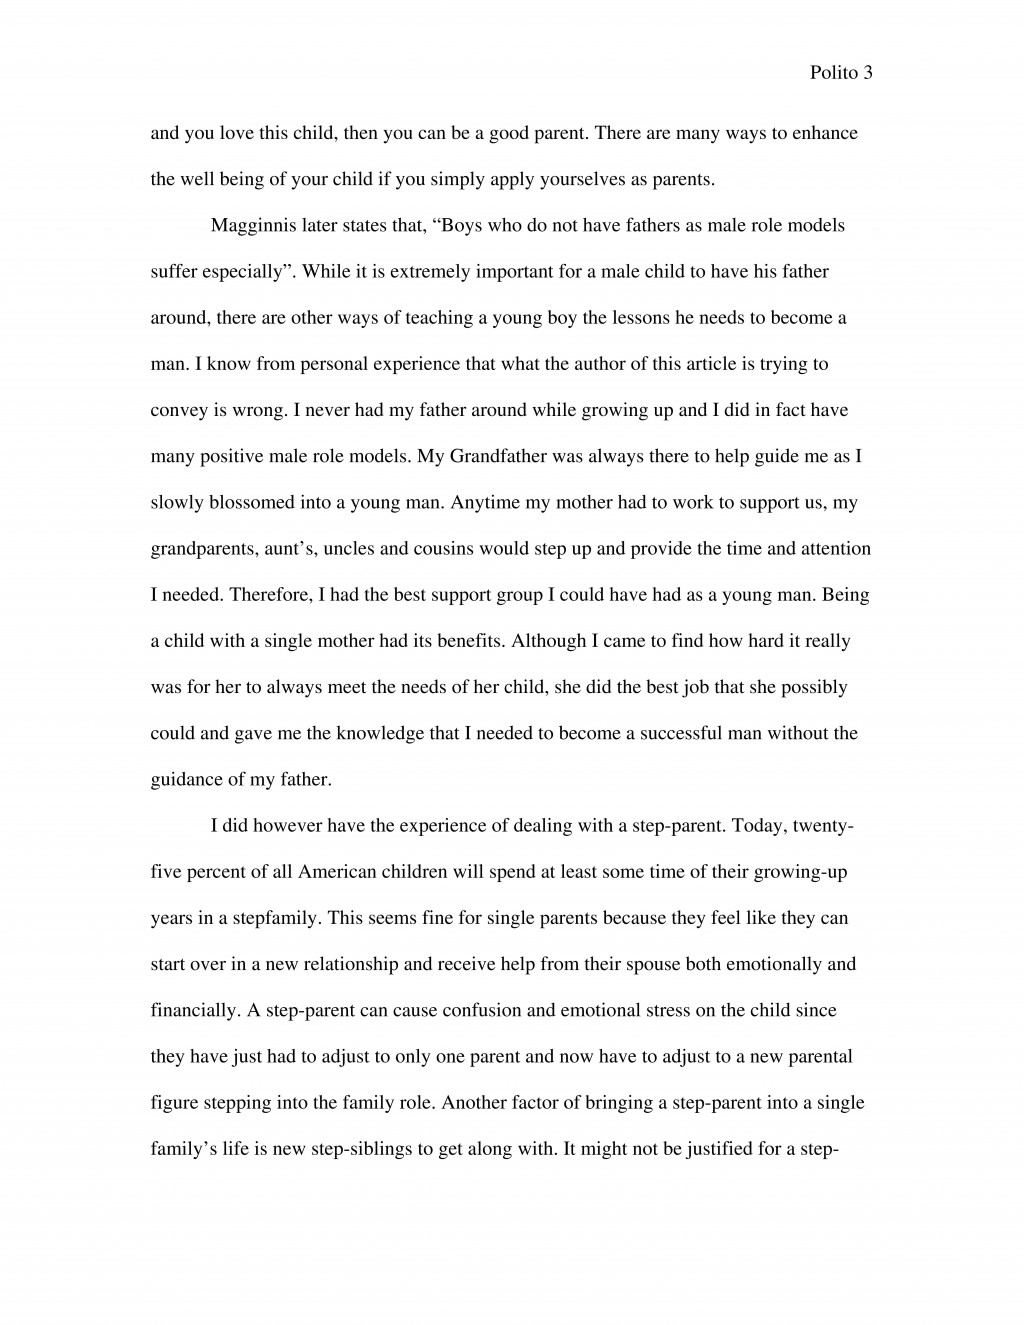 004 Essay Example Explanatory Expository Sample 2 Stunning Writing Prompts High School Fsa Rubric Examples College Large